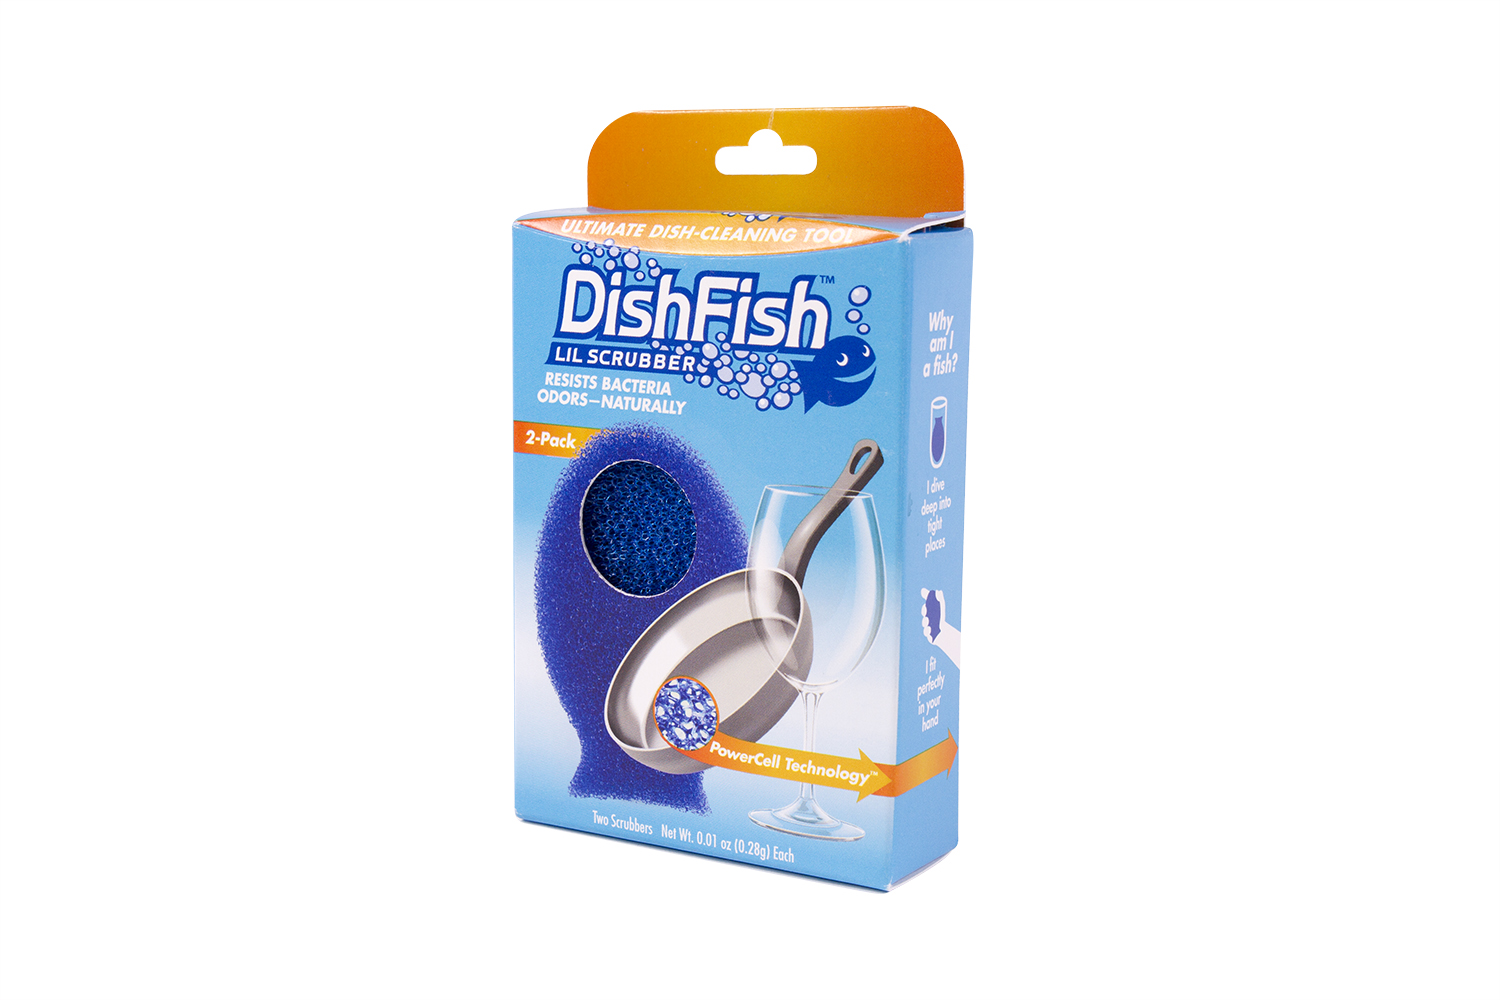 dishfish-lil-scrubber-3quarter-right-side-package copy.jpg